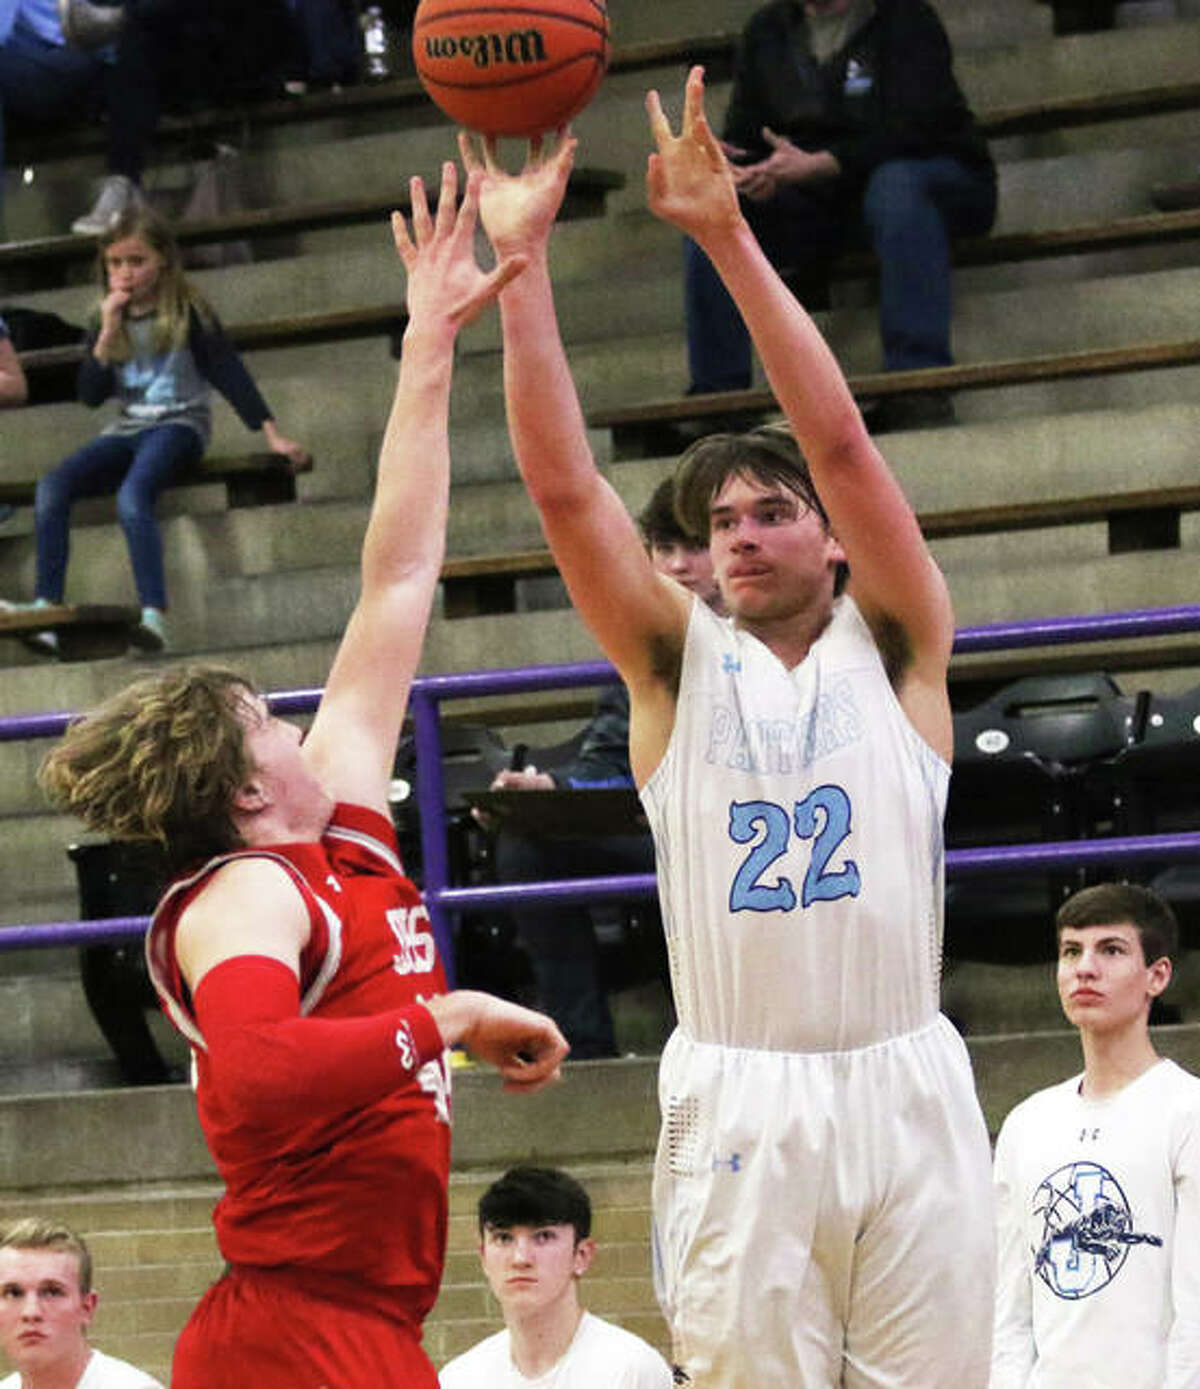 Jersey's Tucker Shalley (22) launches a 3-pointer over Jacksonville's Drew Ezard during a Wednesday night semifinal at the Taylorville Class 3A Regional. Shalley scored 25 points in the Panthers' loss.